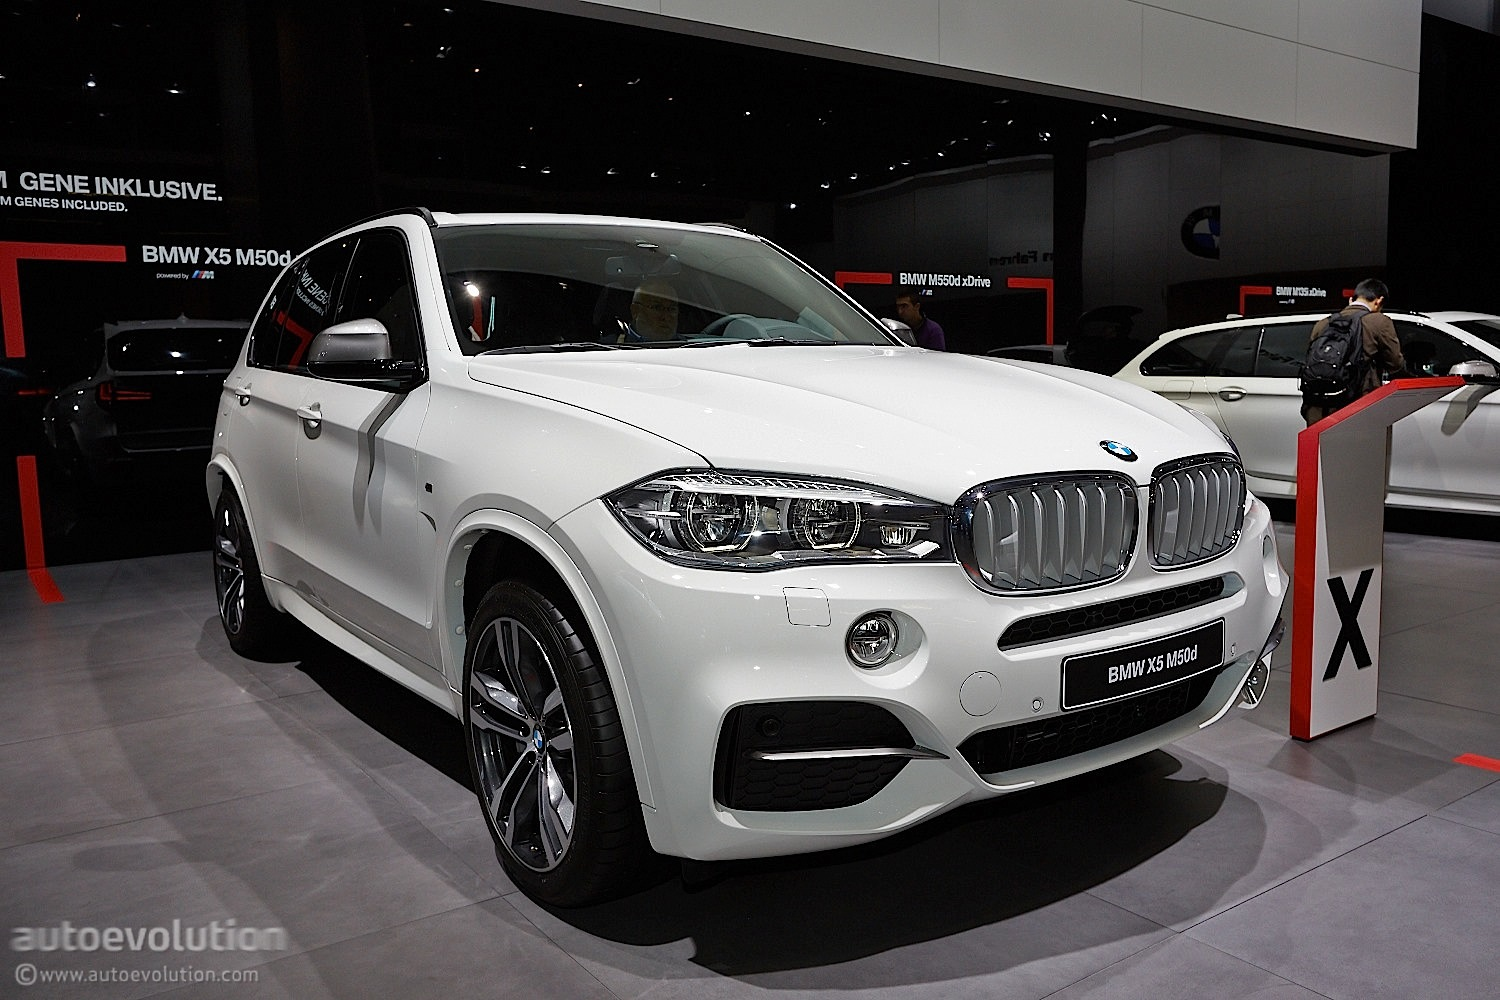 2013 Bmw X5 (f15) – pictures, ...